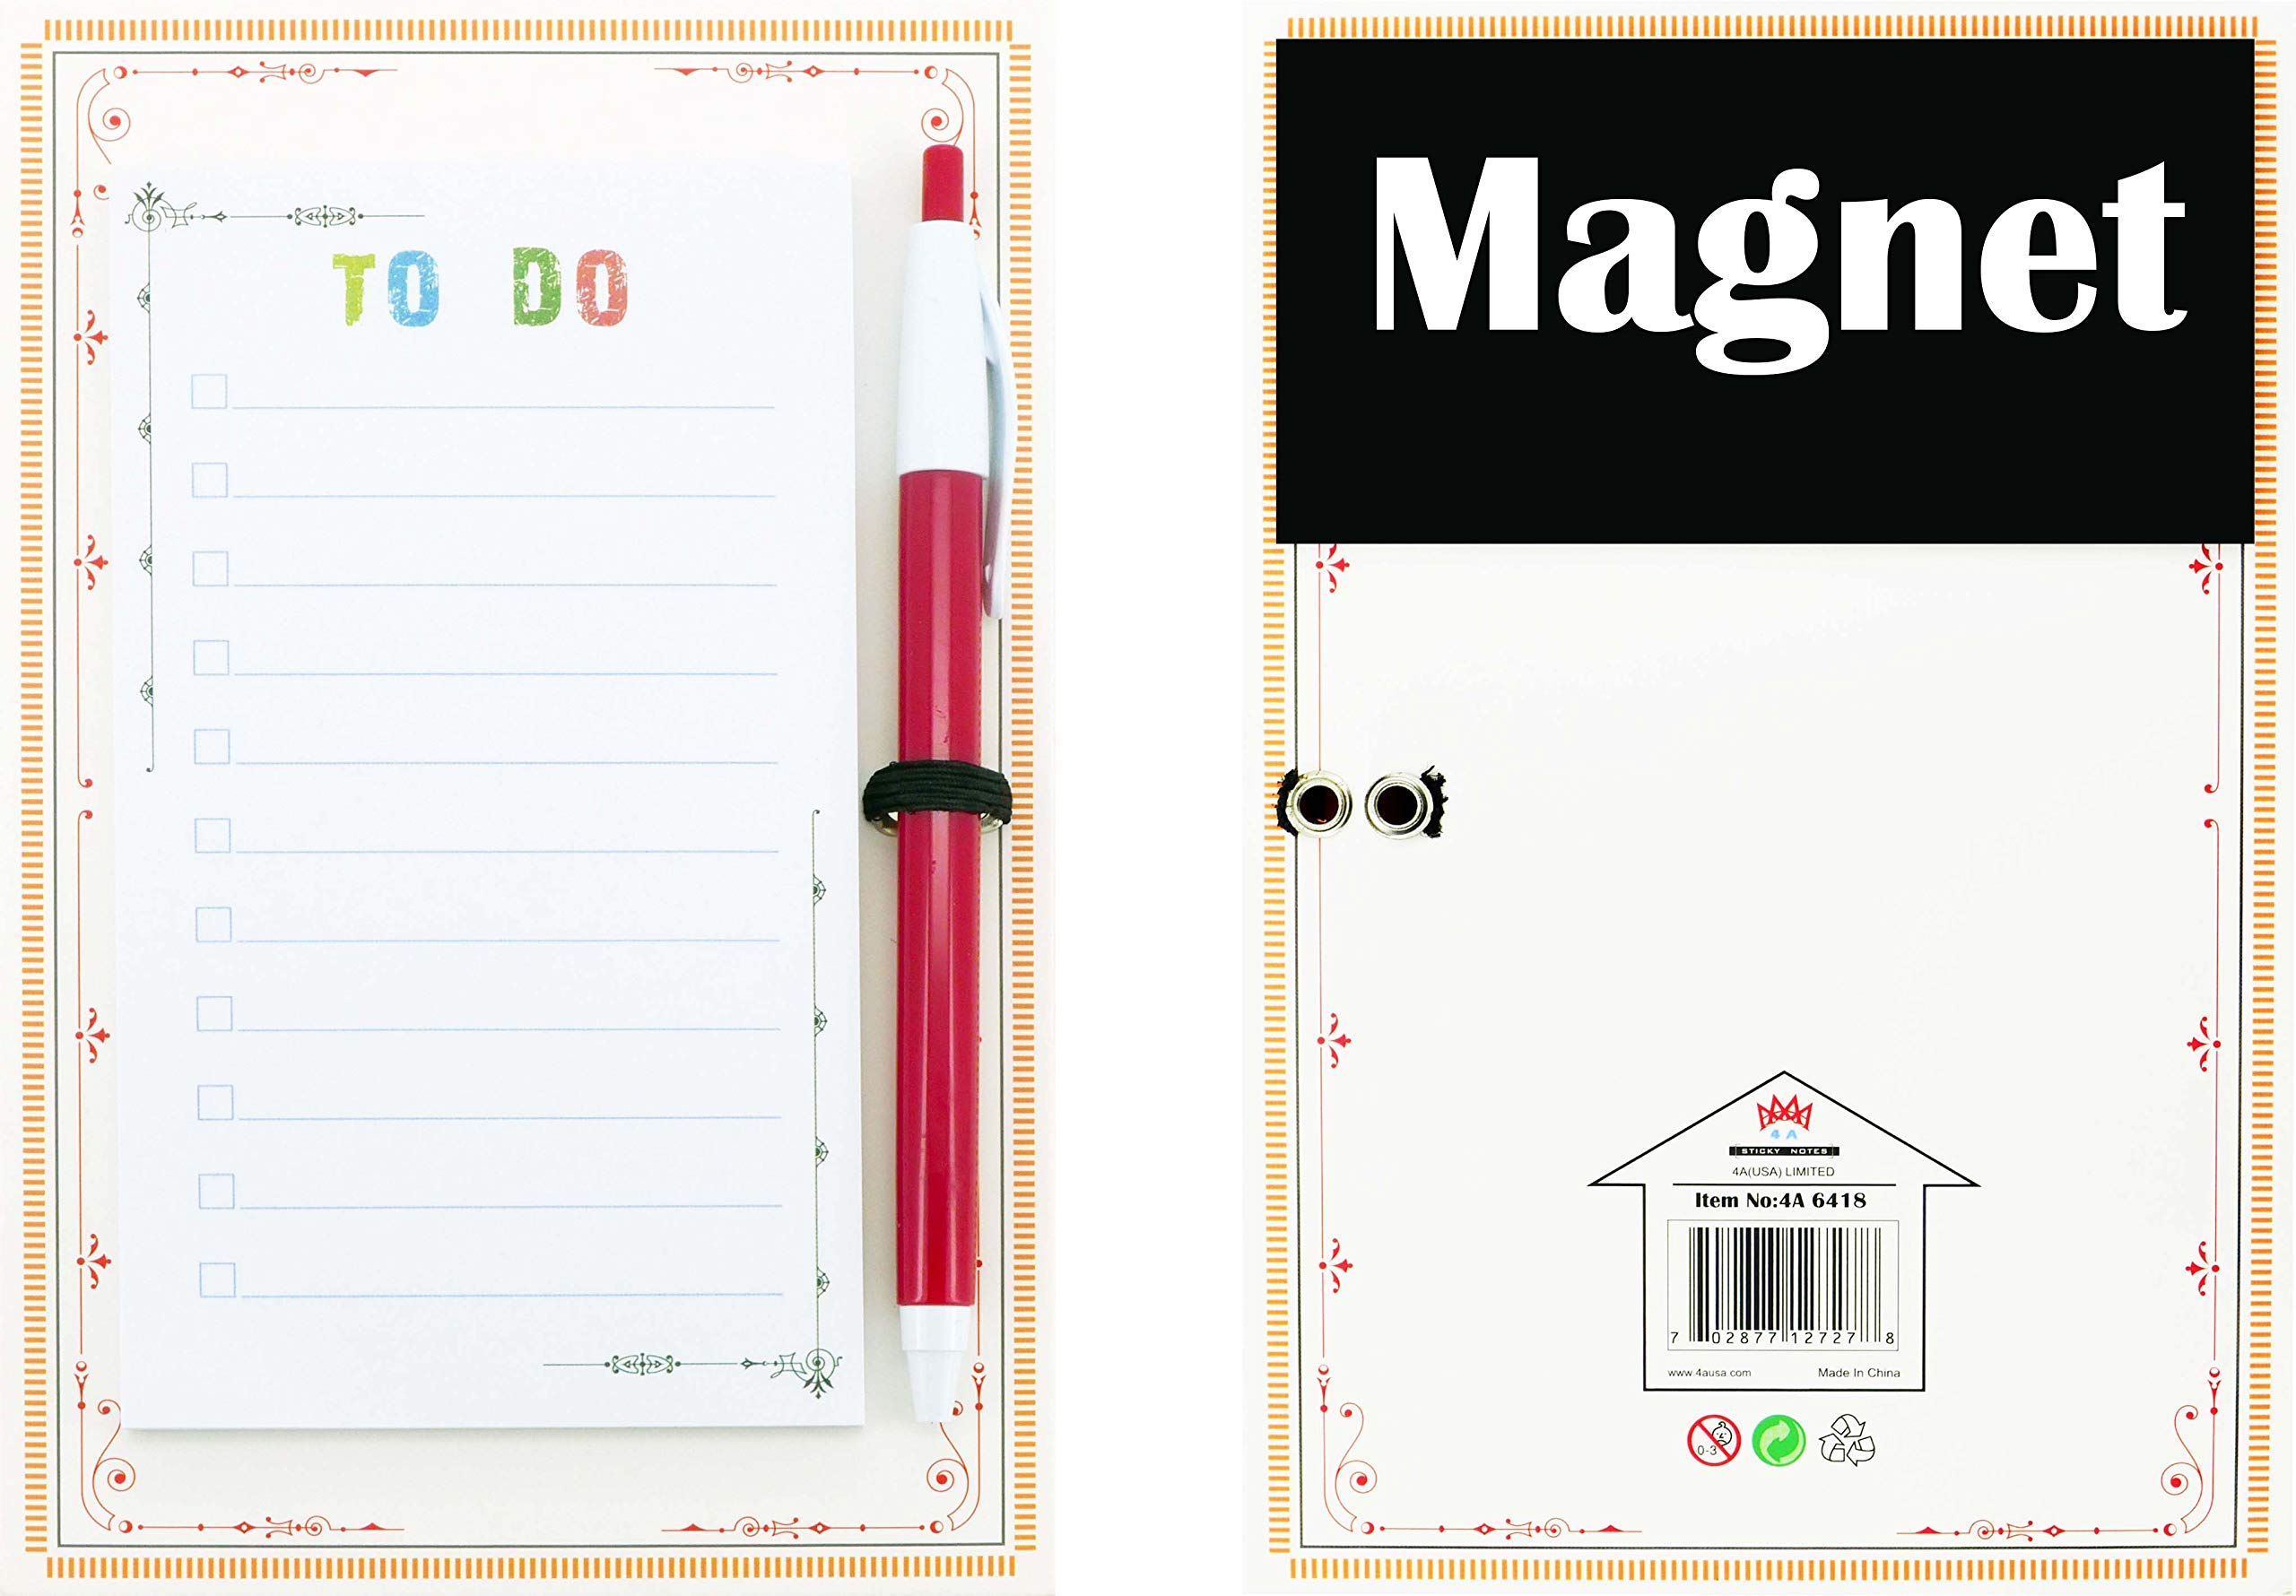 """4A Magnet Sticky Notes with Pen Set,""""to DO"""",Lined, Magnet+Pen+Hardboard,Self-Stick Notes,5.5 x 3 Inches,50 Sheets/Pad,1 Pad/Pack,4A 6418"""